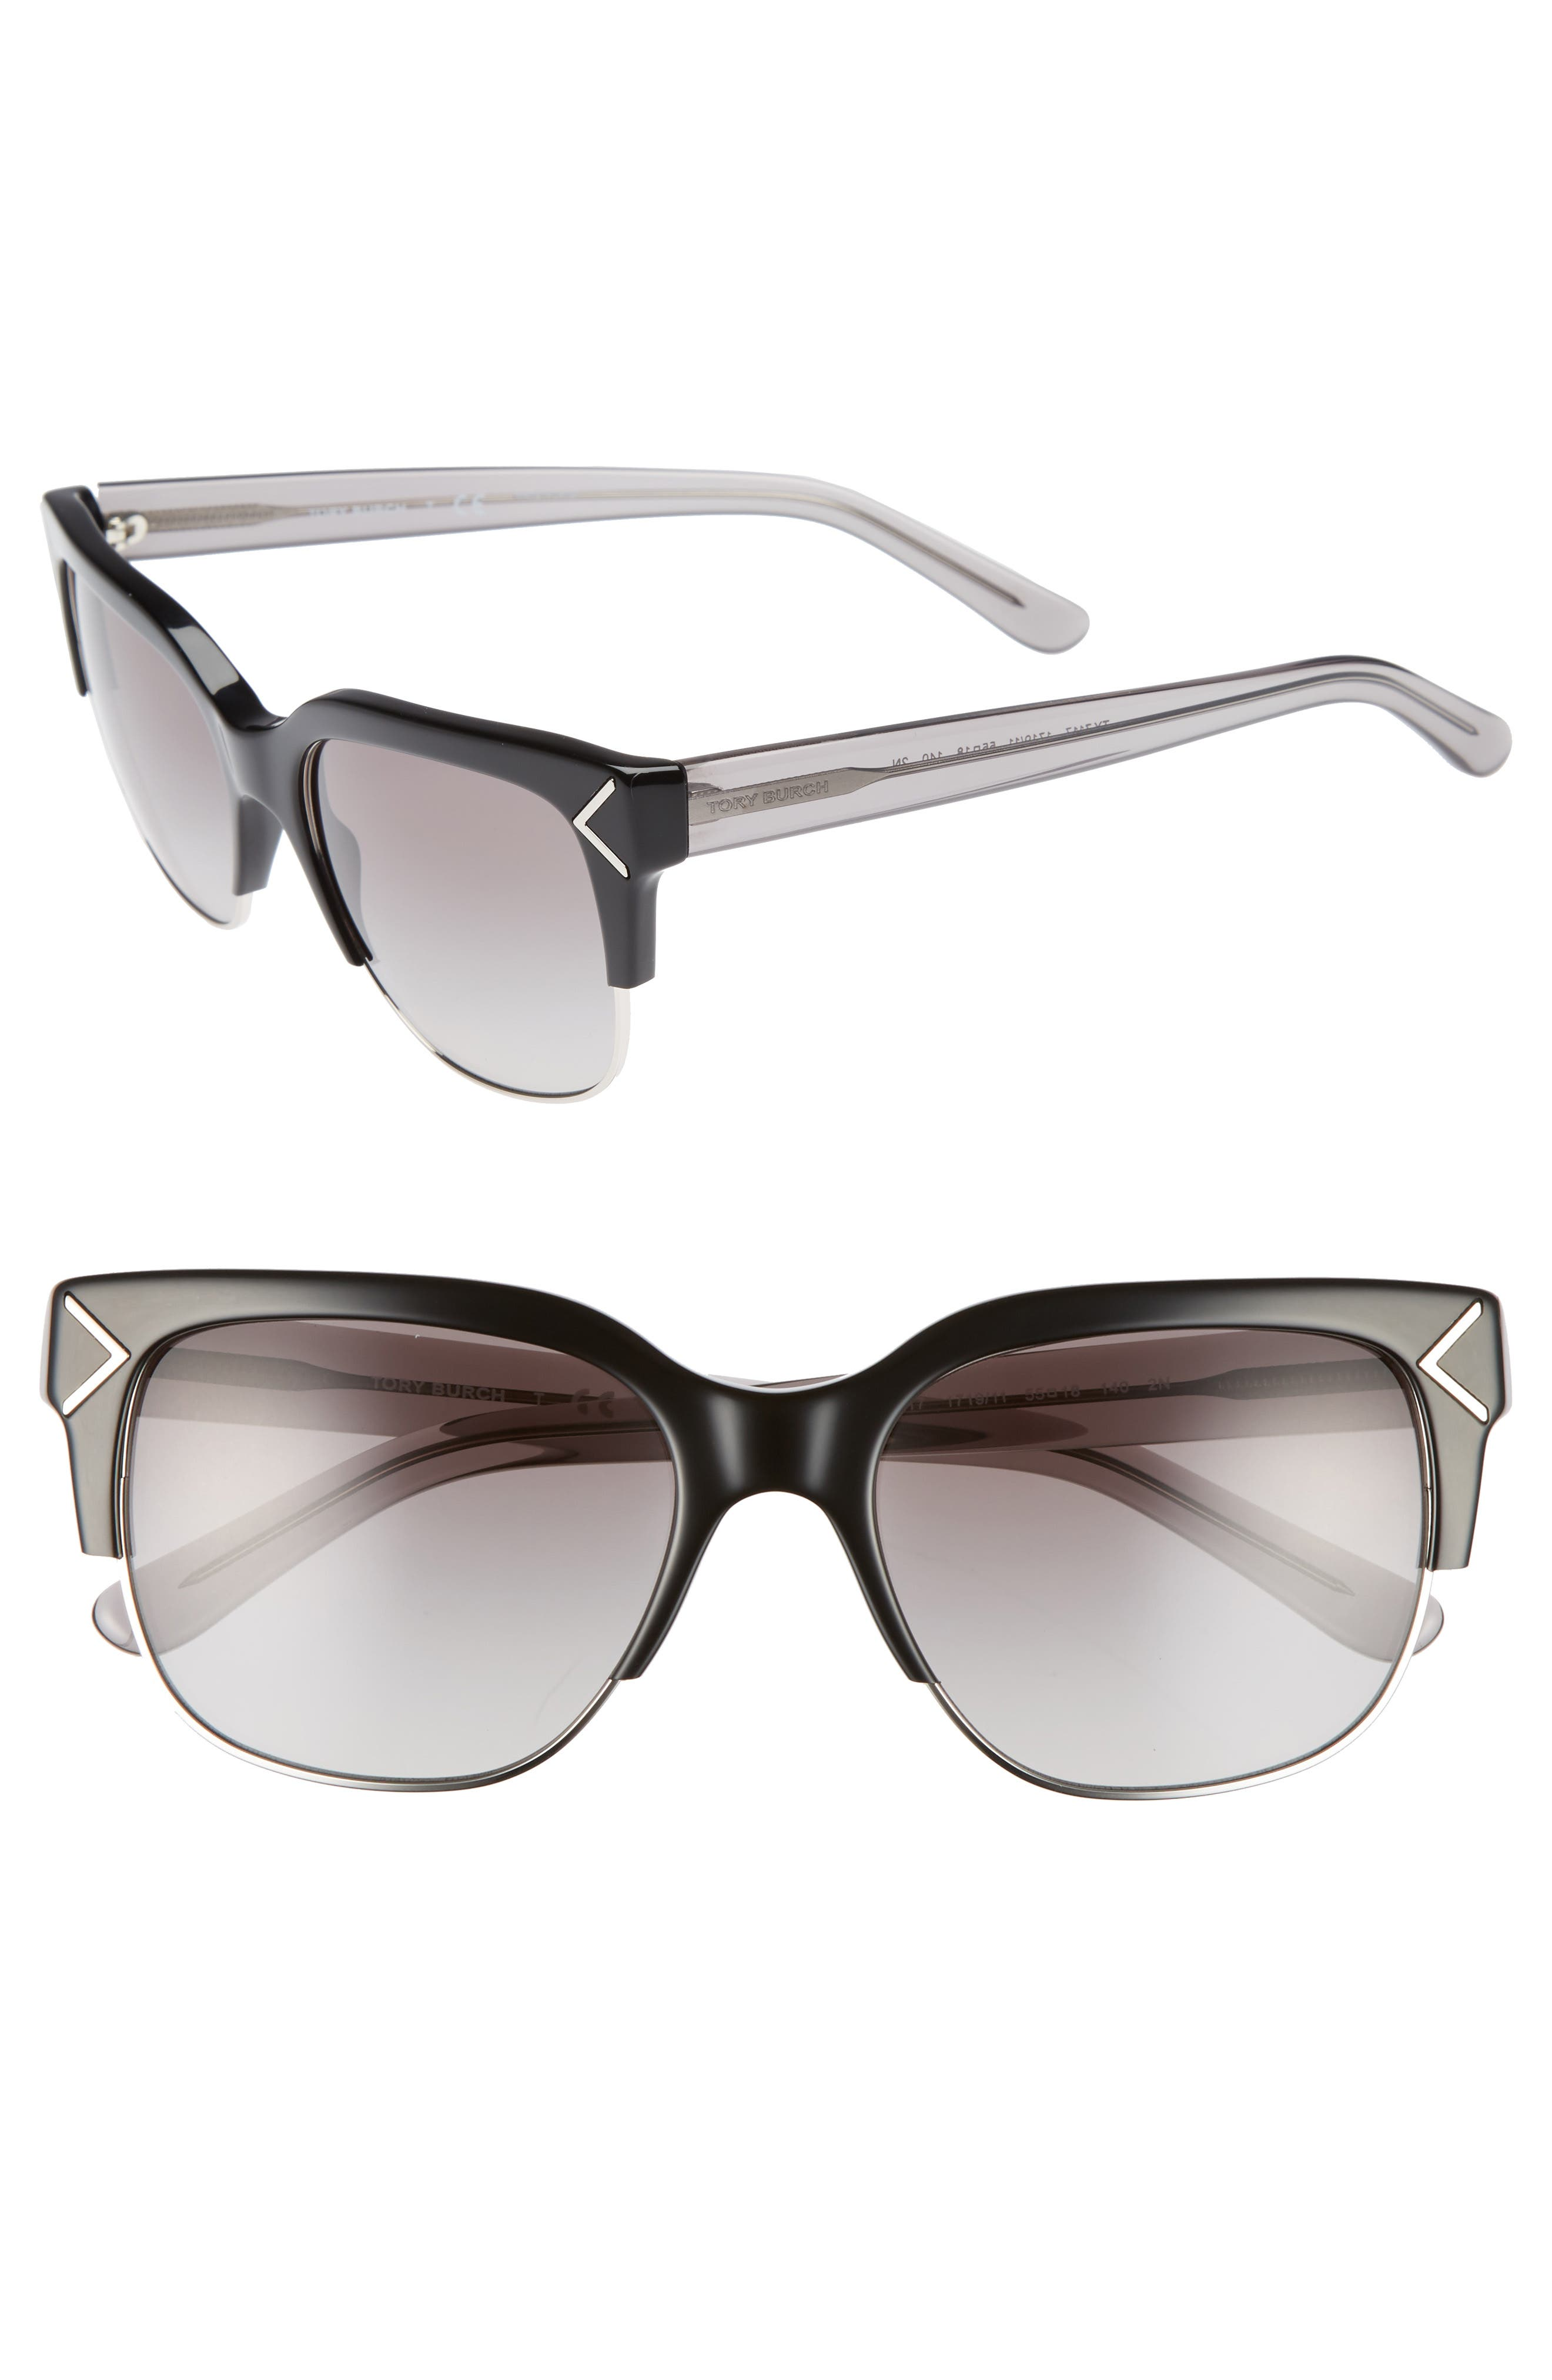 Alternate Image 1 Selected - Tory Burch 55mm Gradient Square Sunglasses